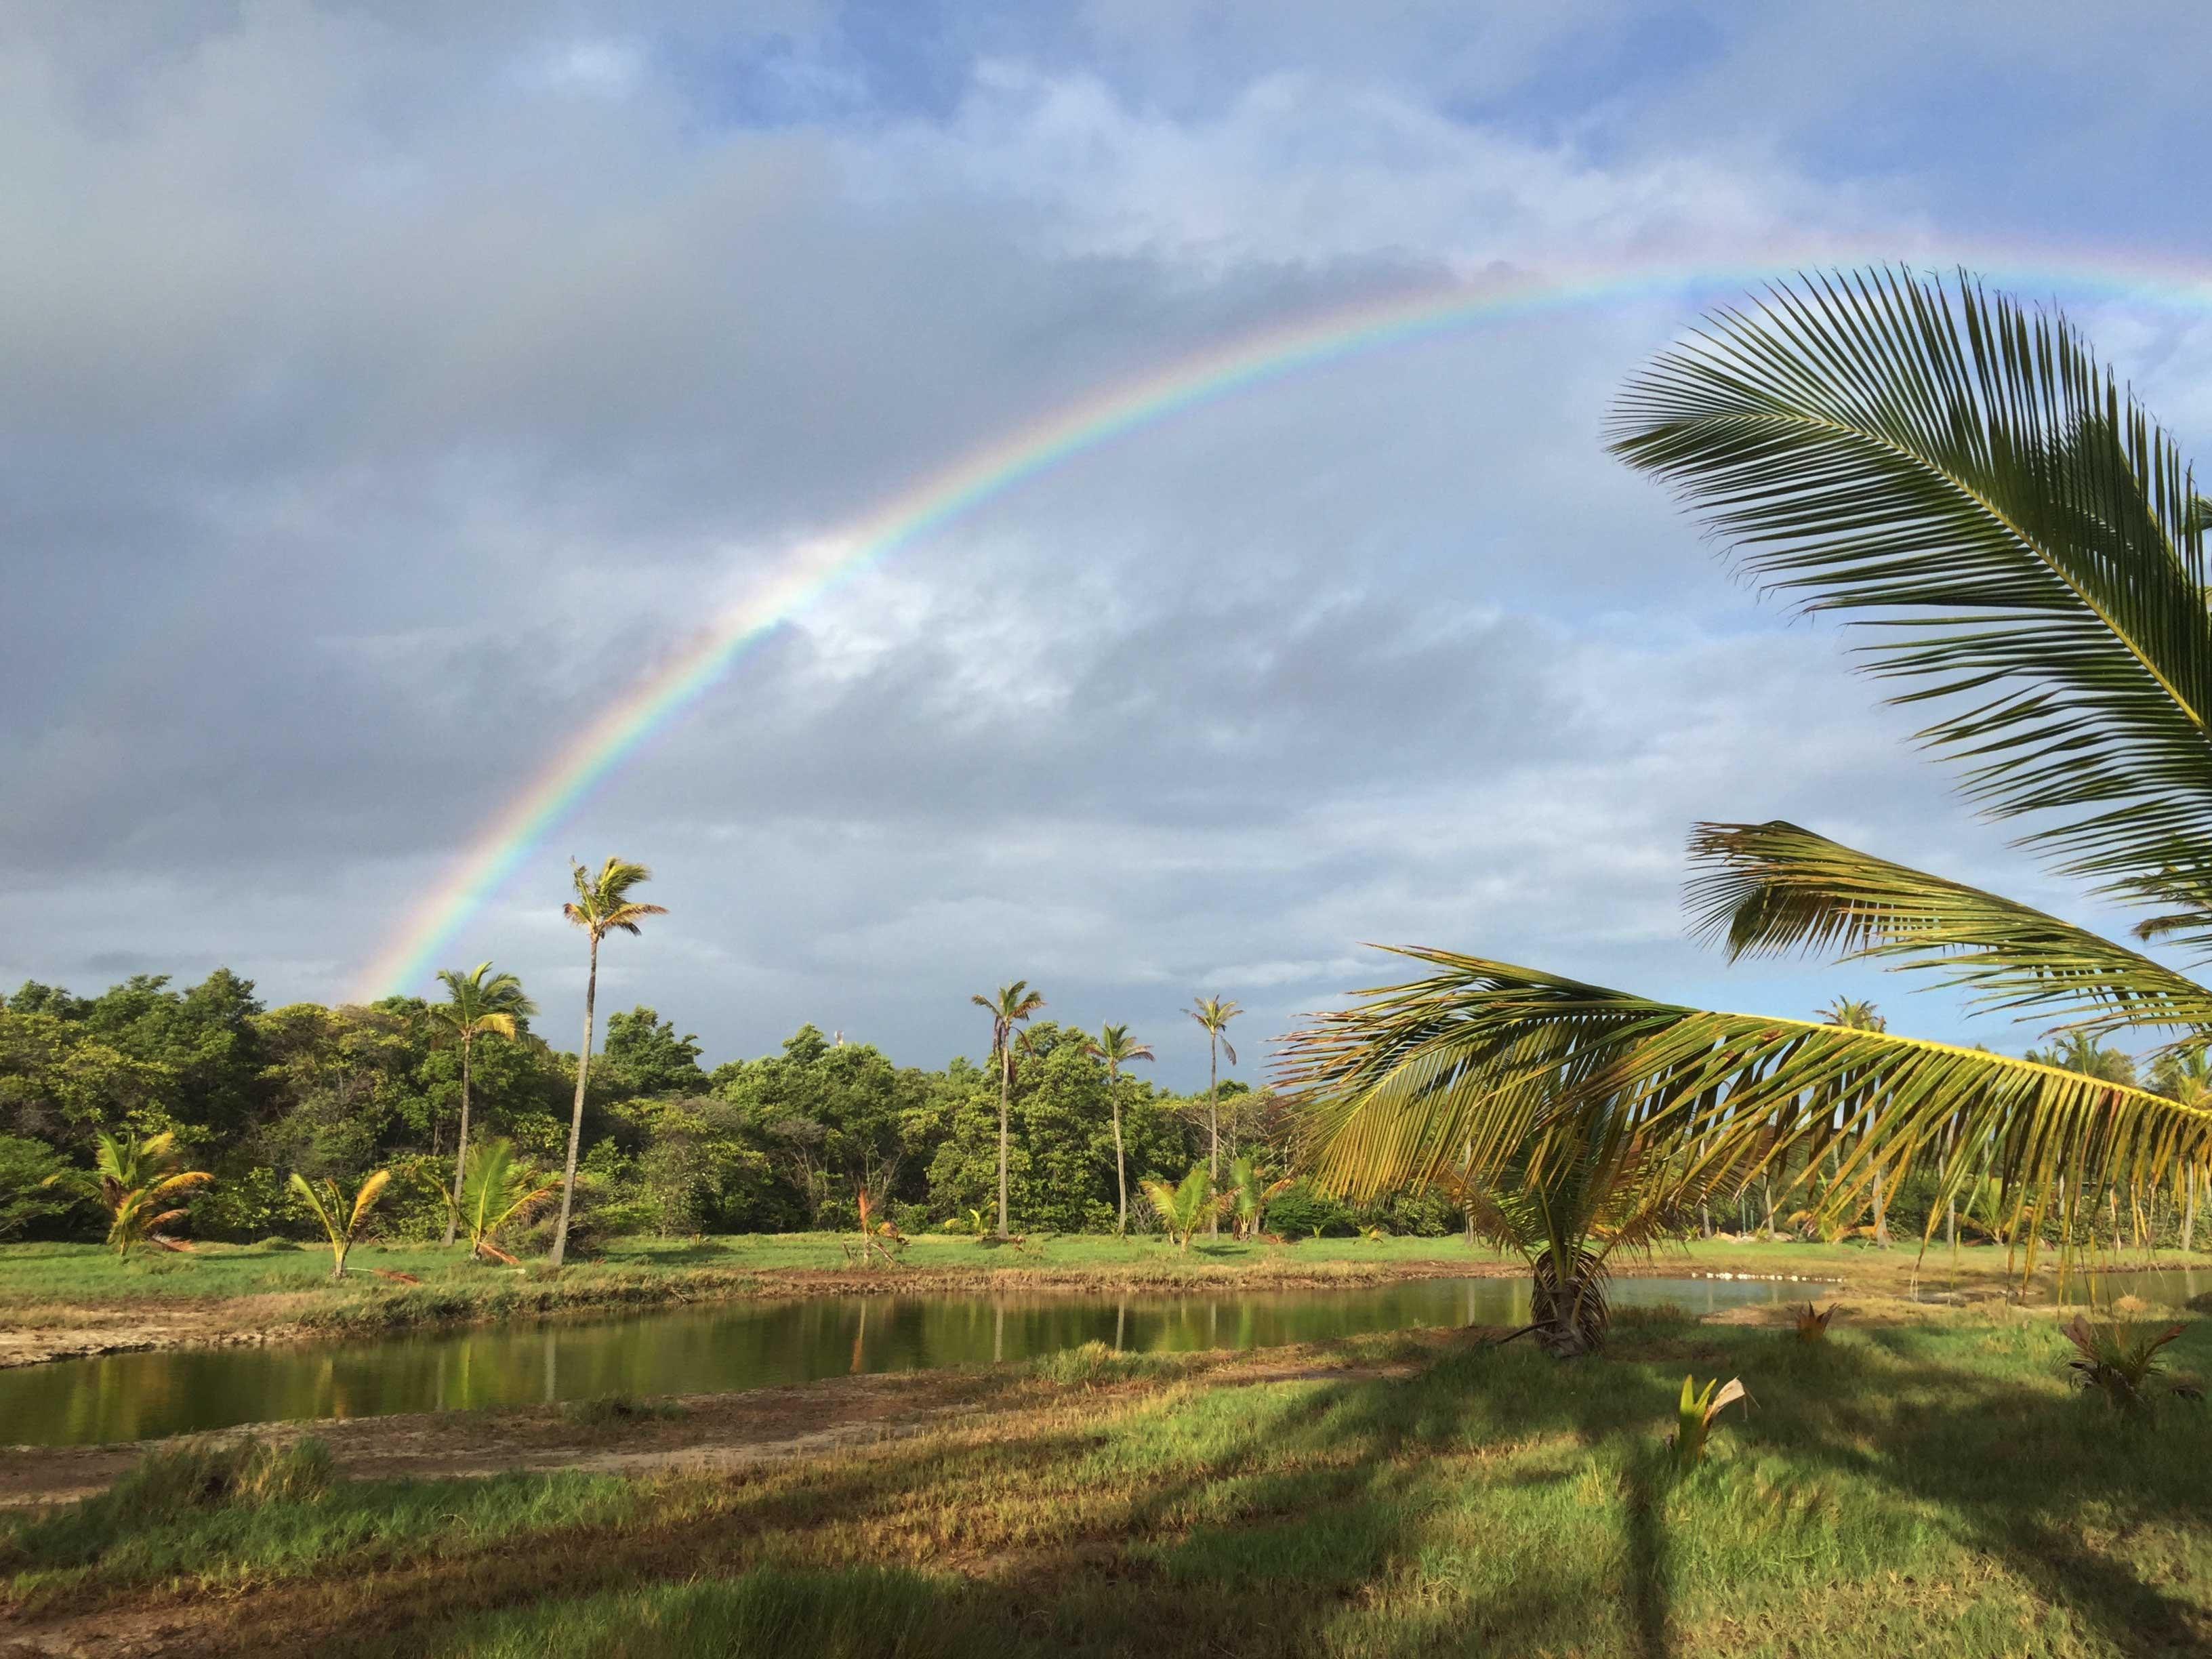 A rainbow stretches over a grass field